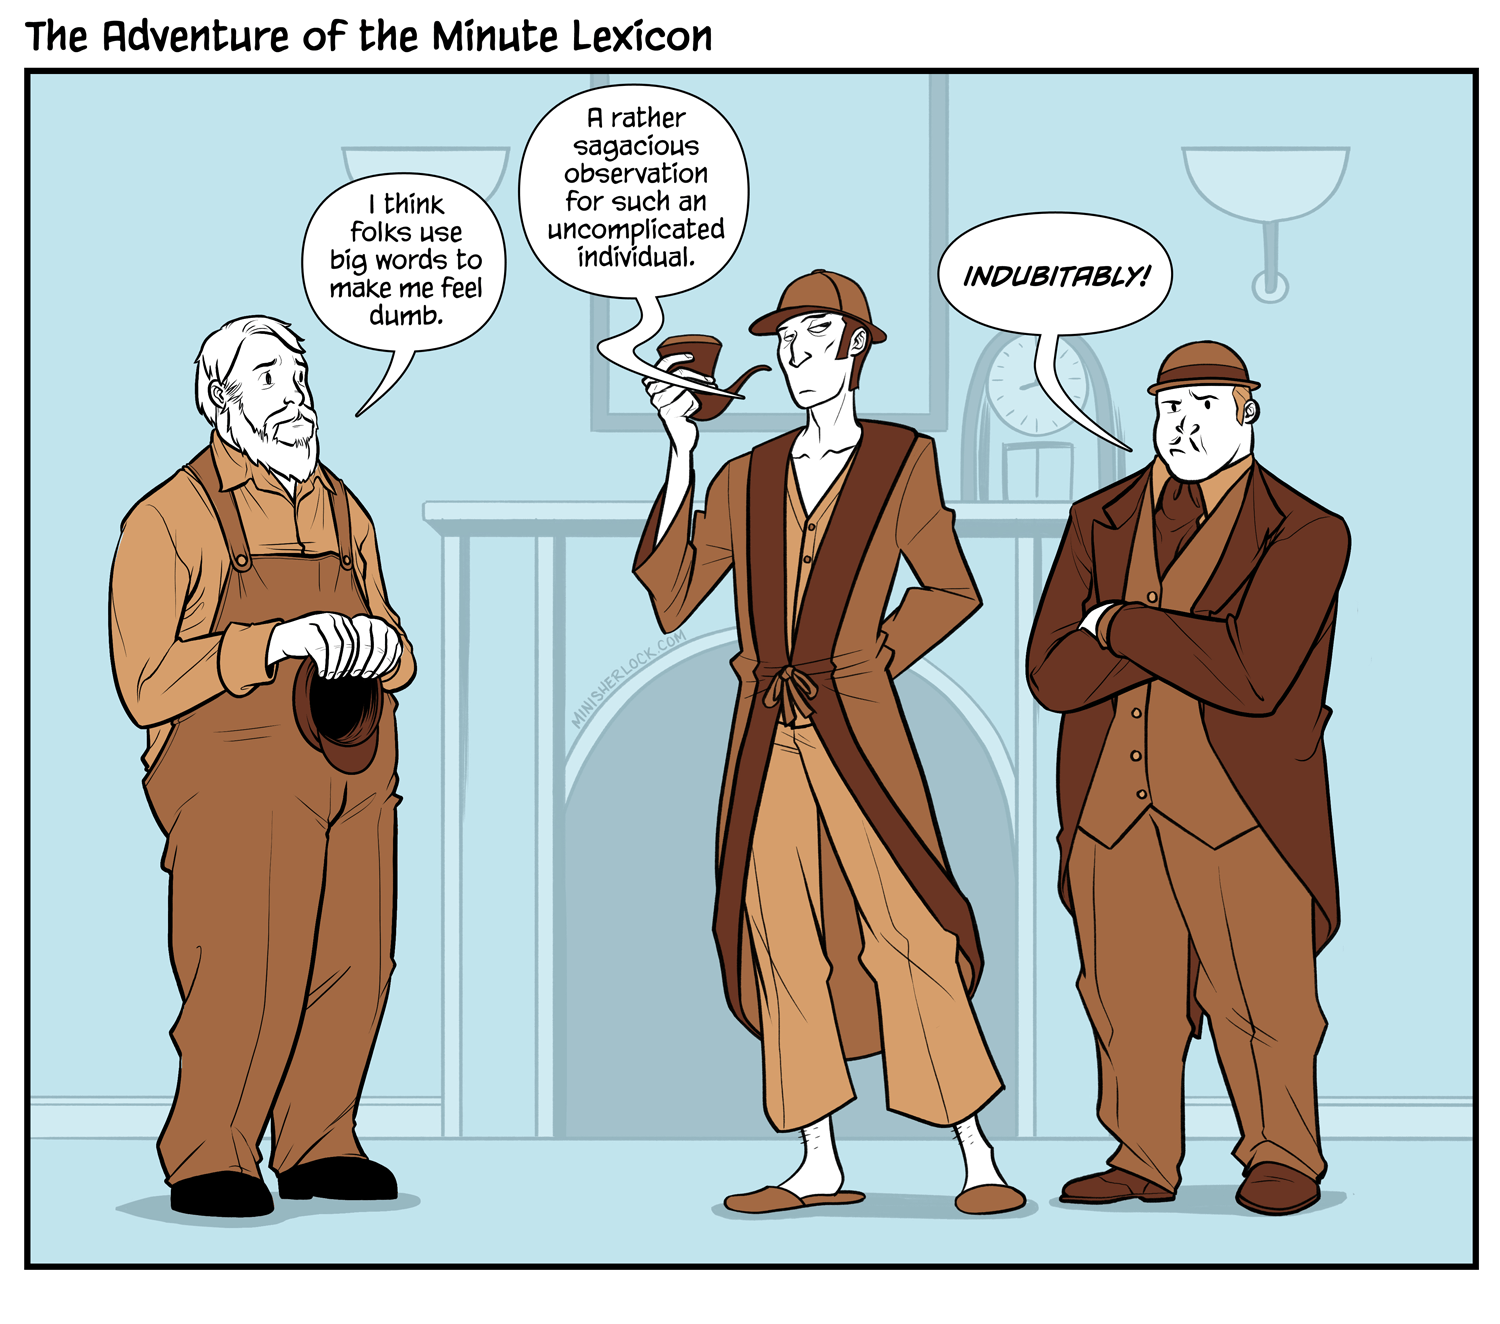 The Adventure of the Minute Lexicon